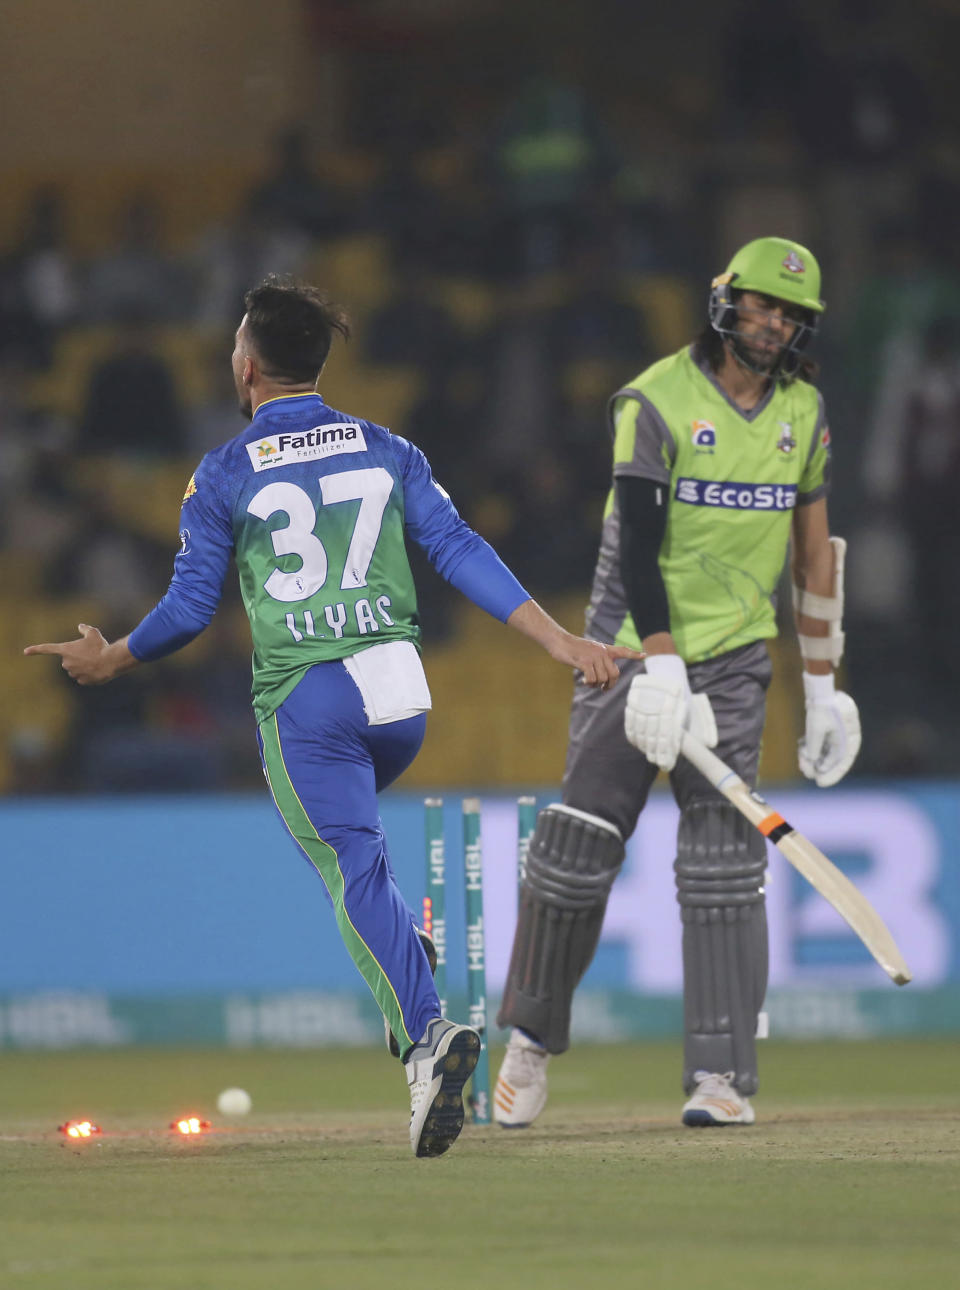 Fast bowler Muhammad Ilyas of Multan Sultans celebrates after clean bowling Lahore Qalandars' David Weise in the Pakistan Super League match in Lahore, Pakistan, Friday, Feb. 21, 2020. (AP Photo/K.M. Chaudhry)